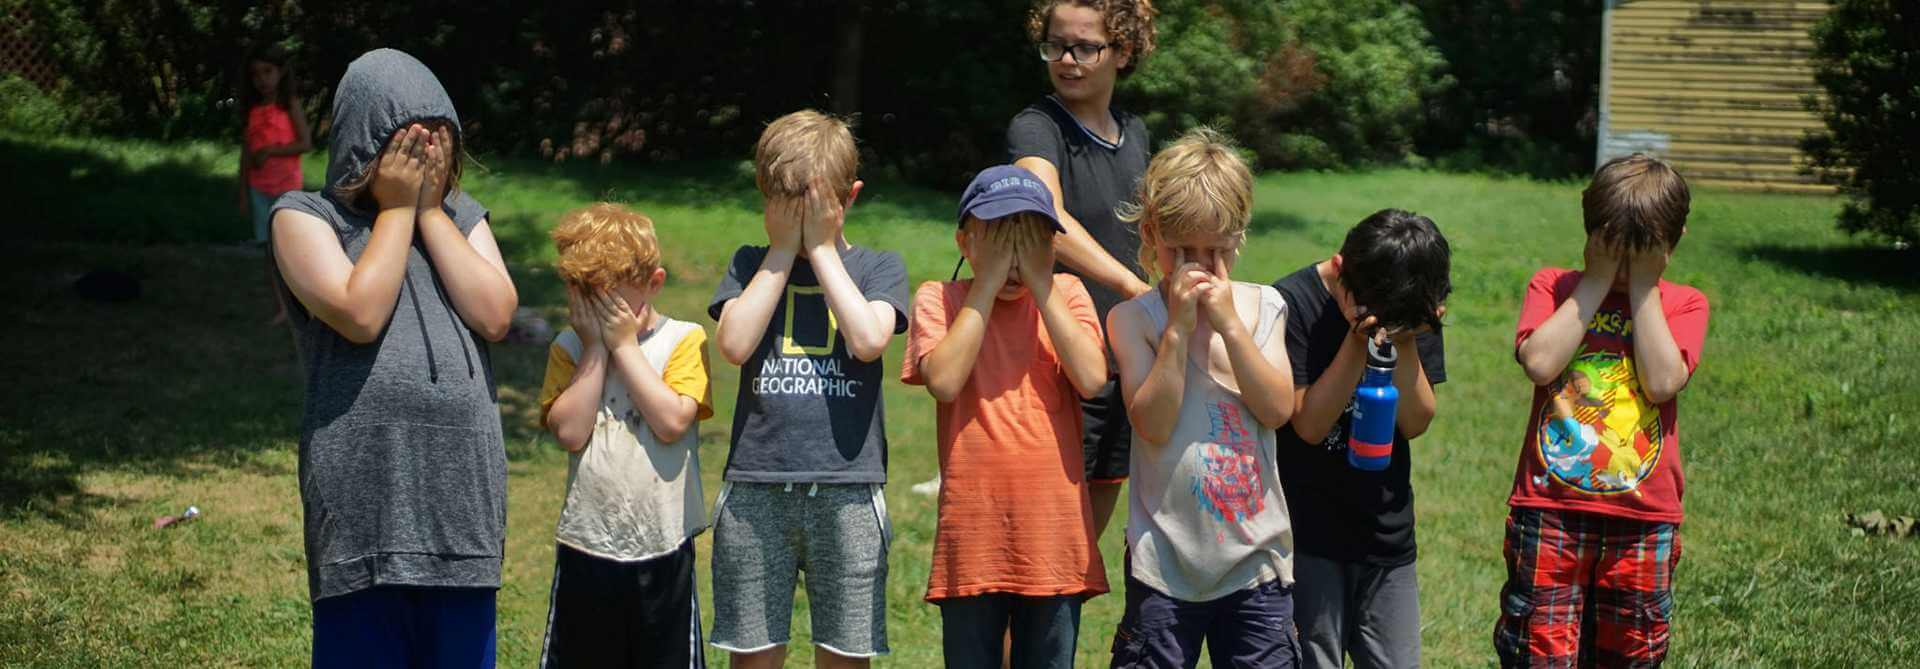 Kids covering their eyes